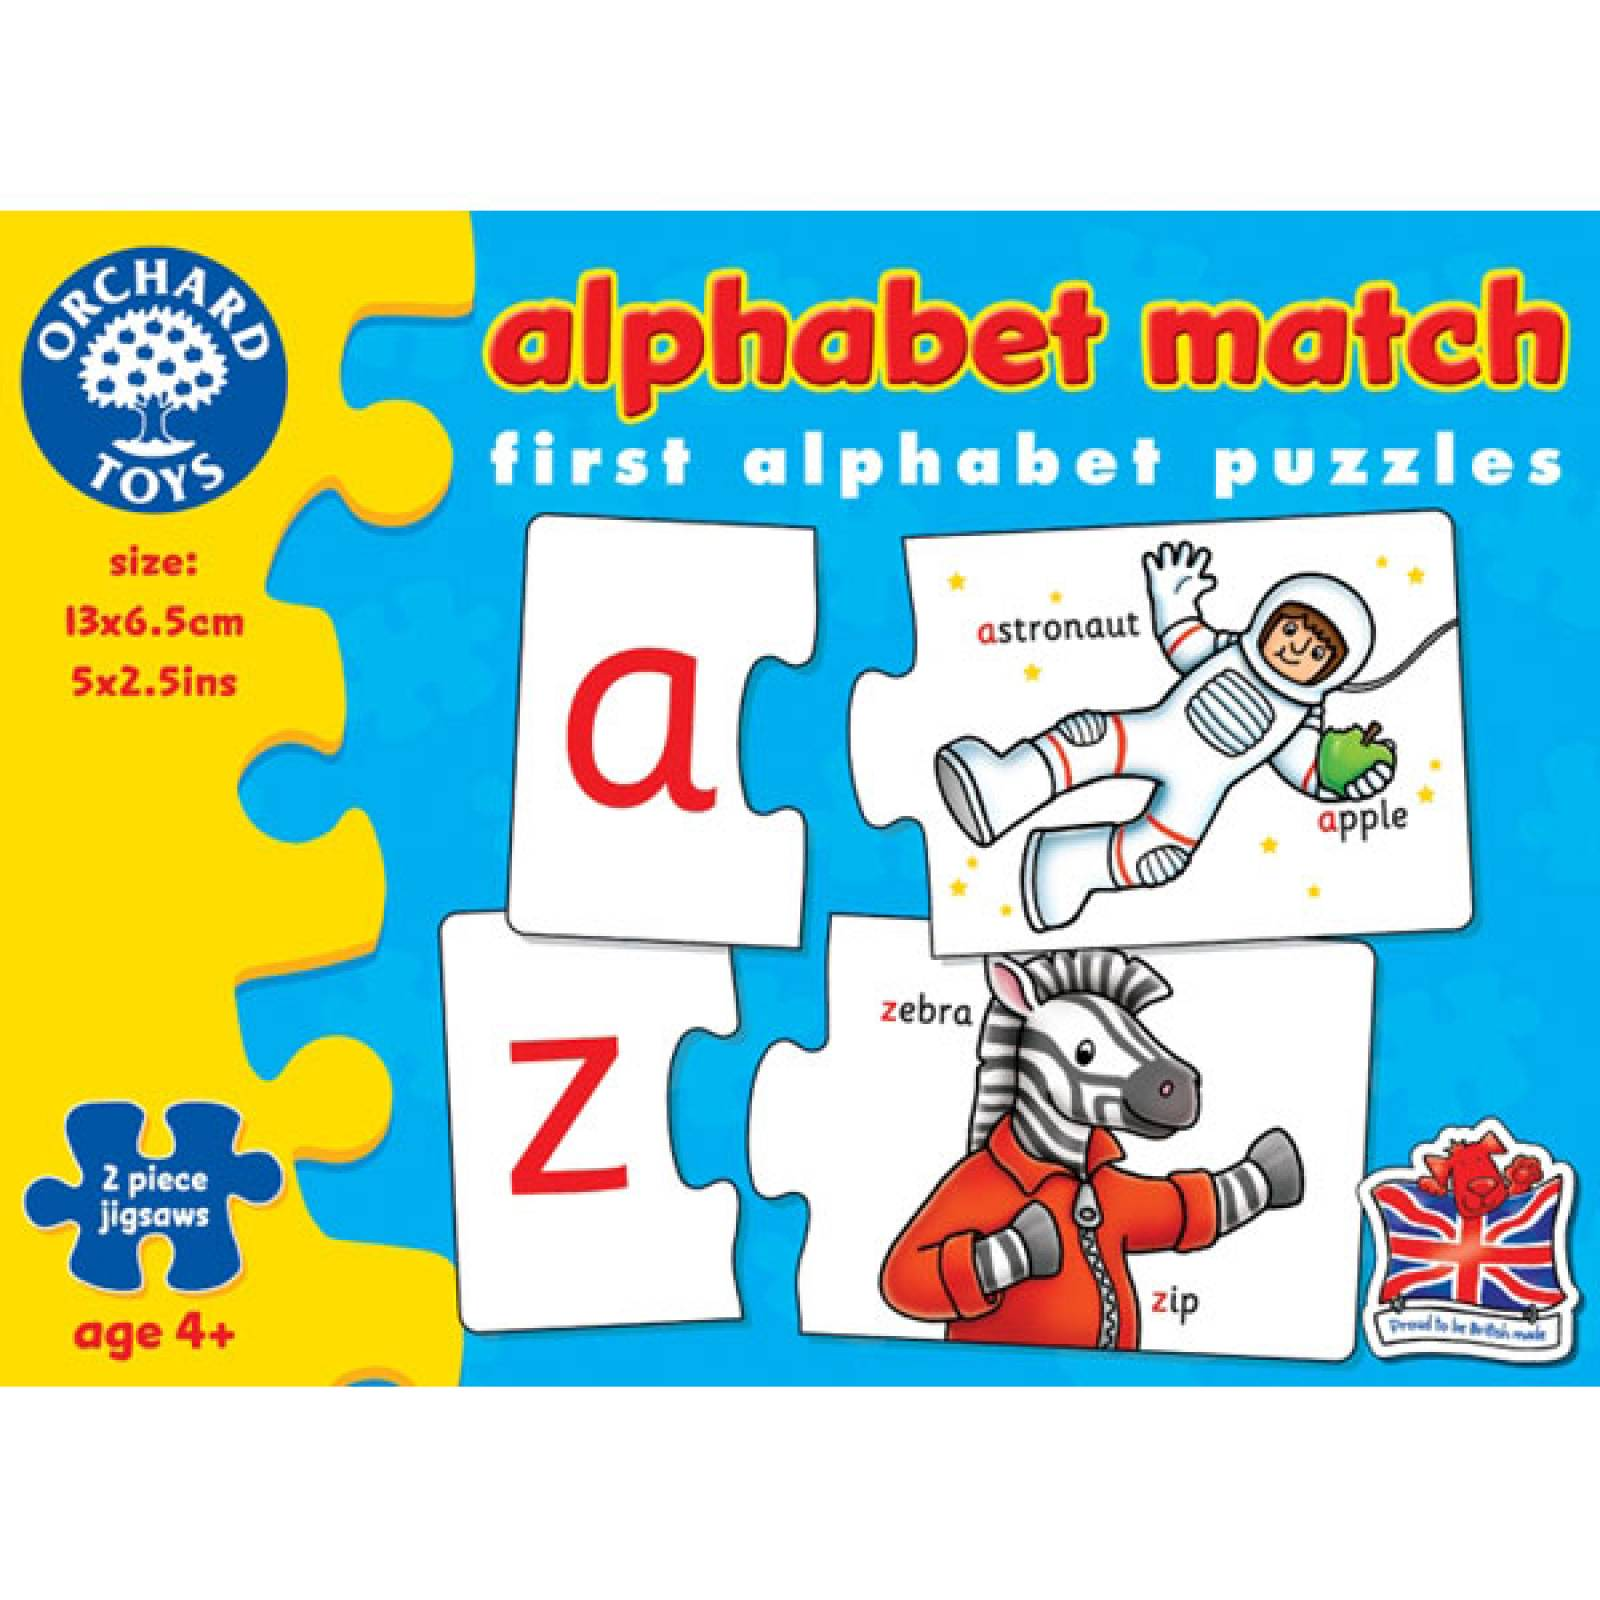 Alphabet Match Game by Orchard 4yr+